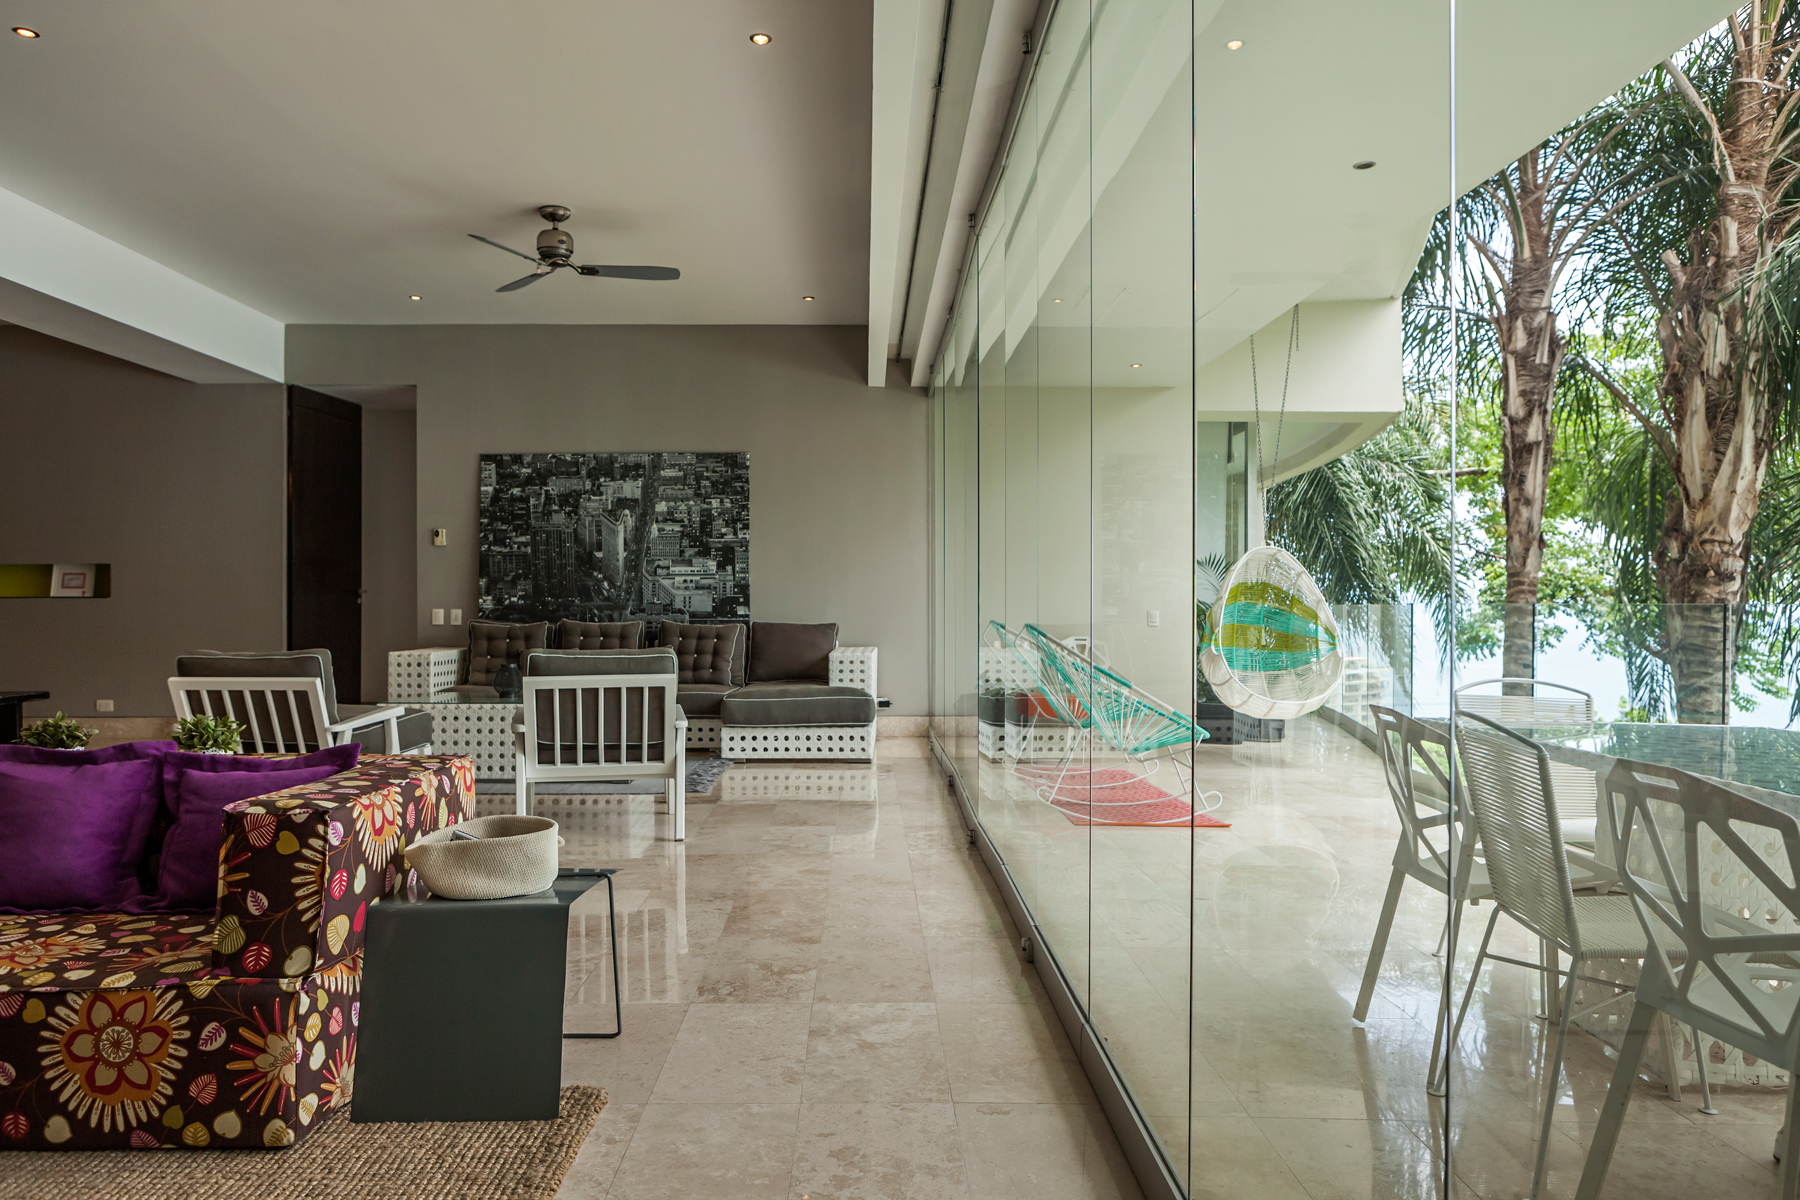 Additional photo for property listing at Avalon 202, Luxury Apartment in Puerto Vallarta Torre Avalon, Depto 202 Calle Gardenias 248 Puerto Vallarta, Jalisco 48399 Mexico